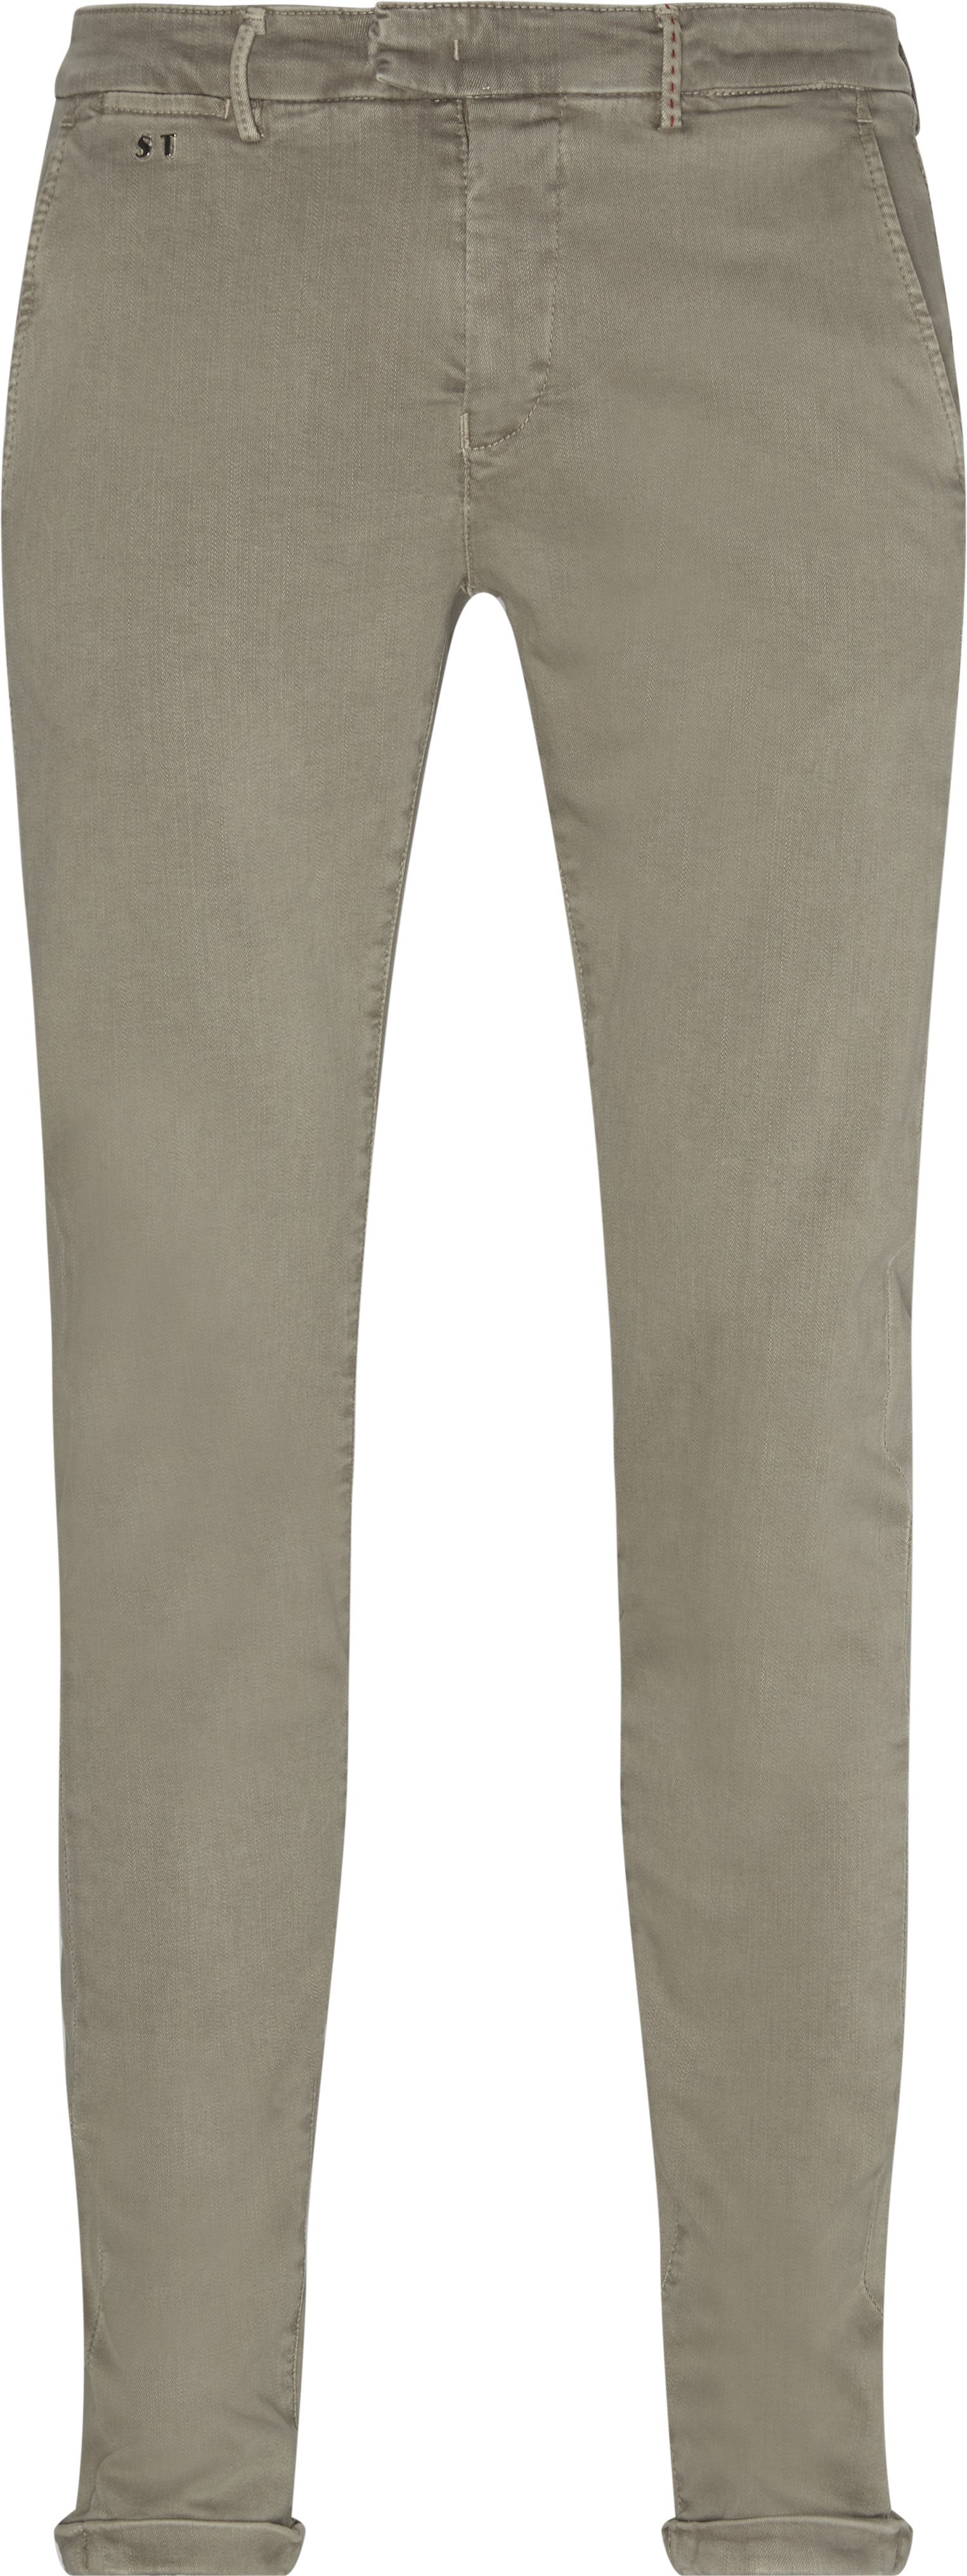 Trousers - Slim fit - Sand